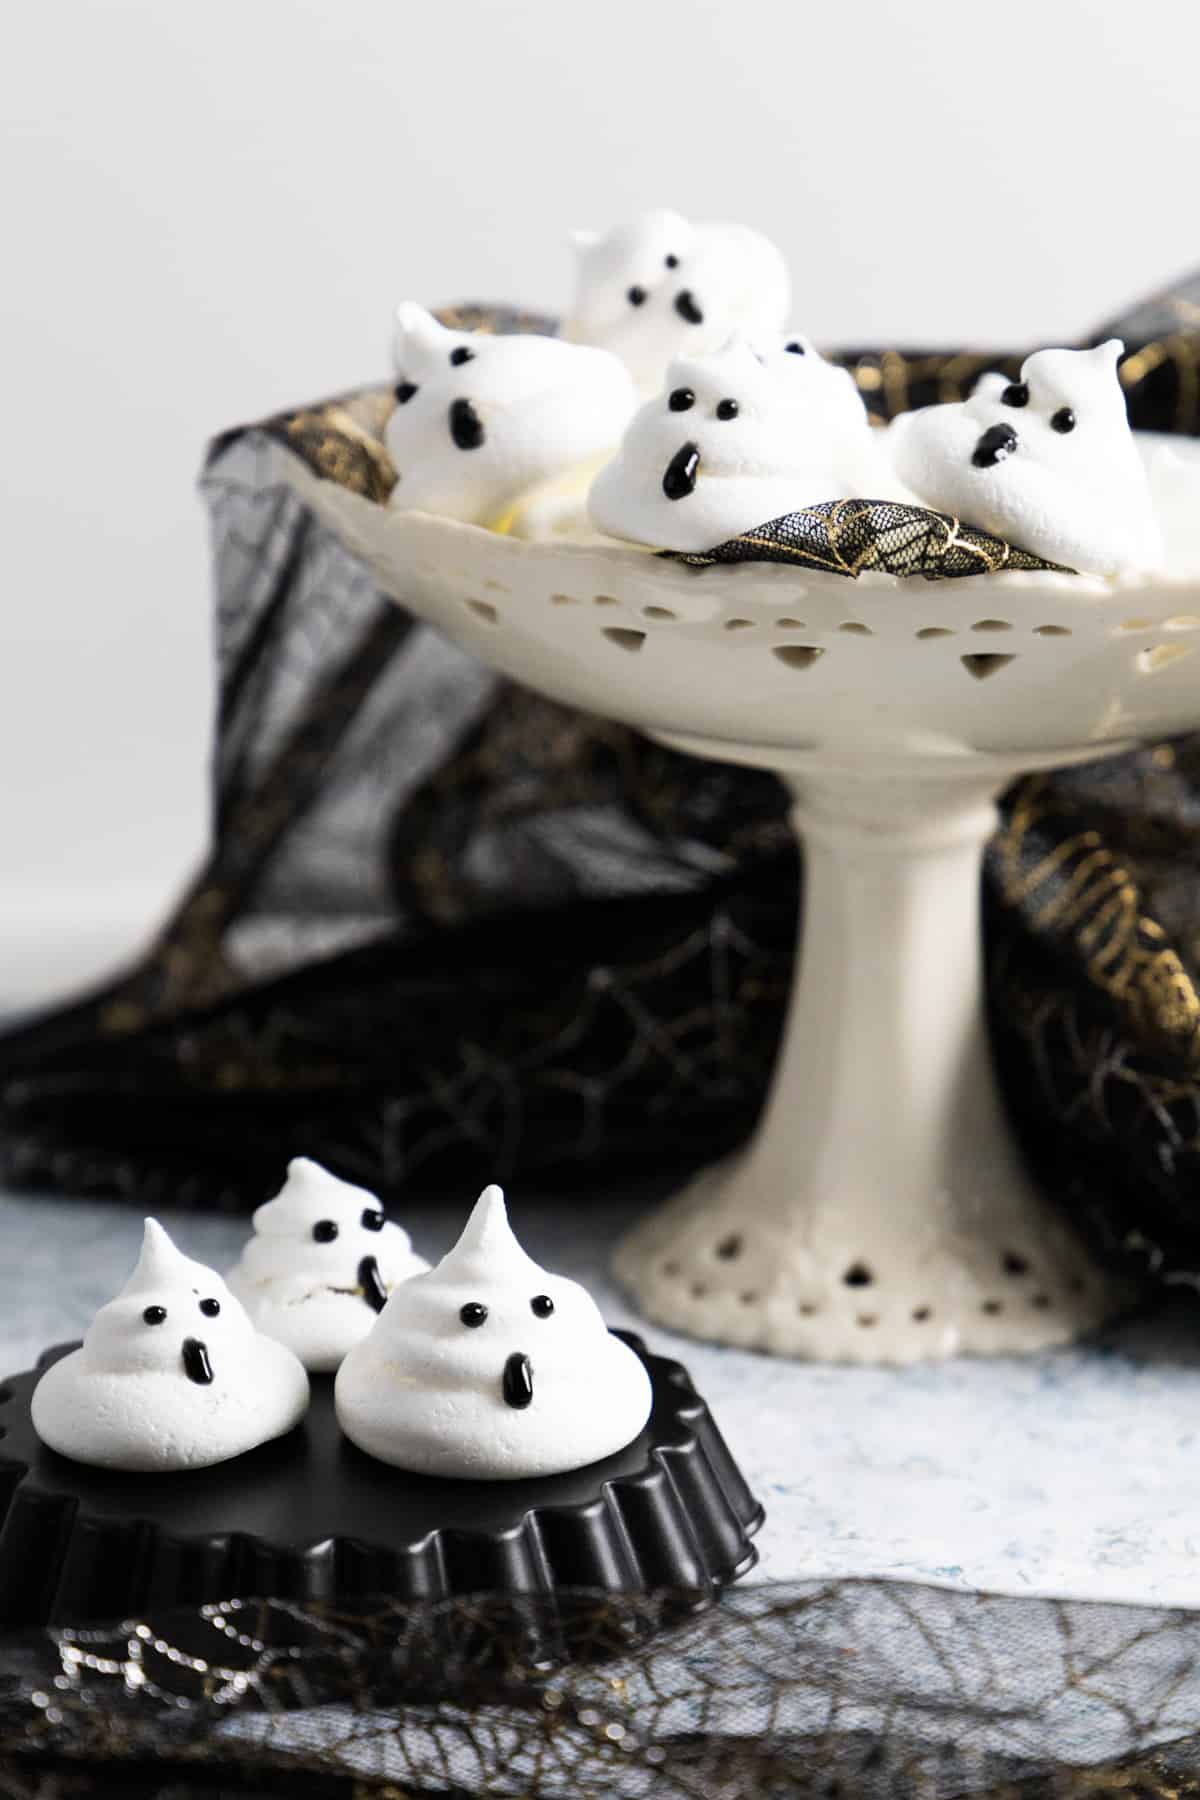 Side view of a cake stand with ghost meringues and a few on a black mold on the table.